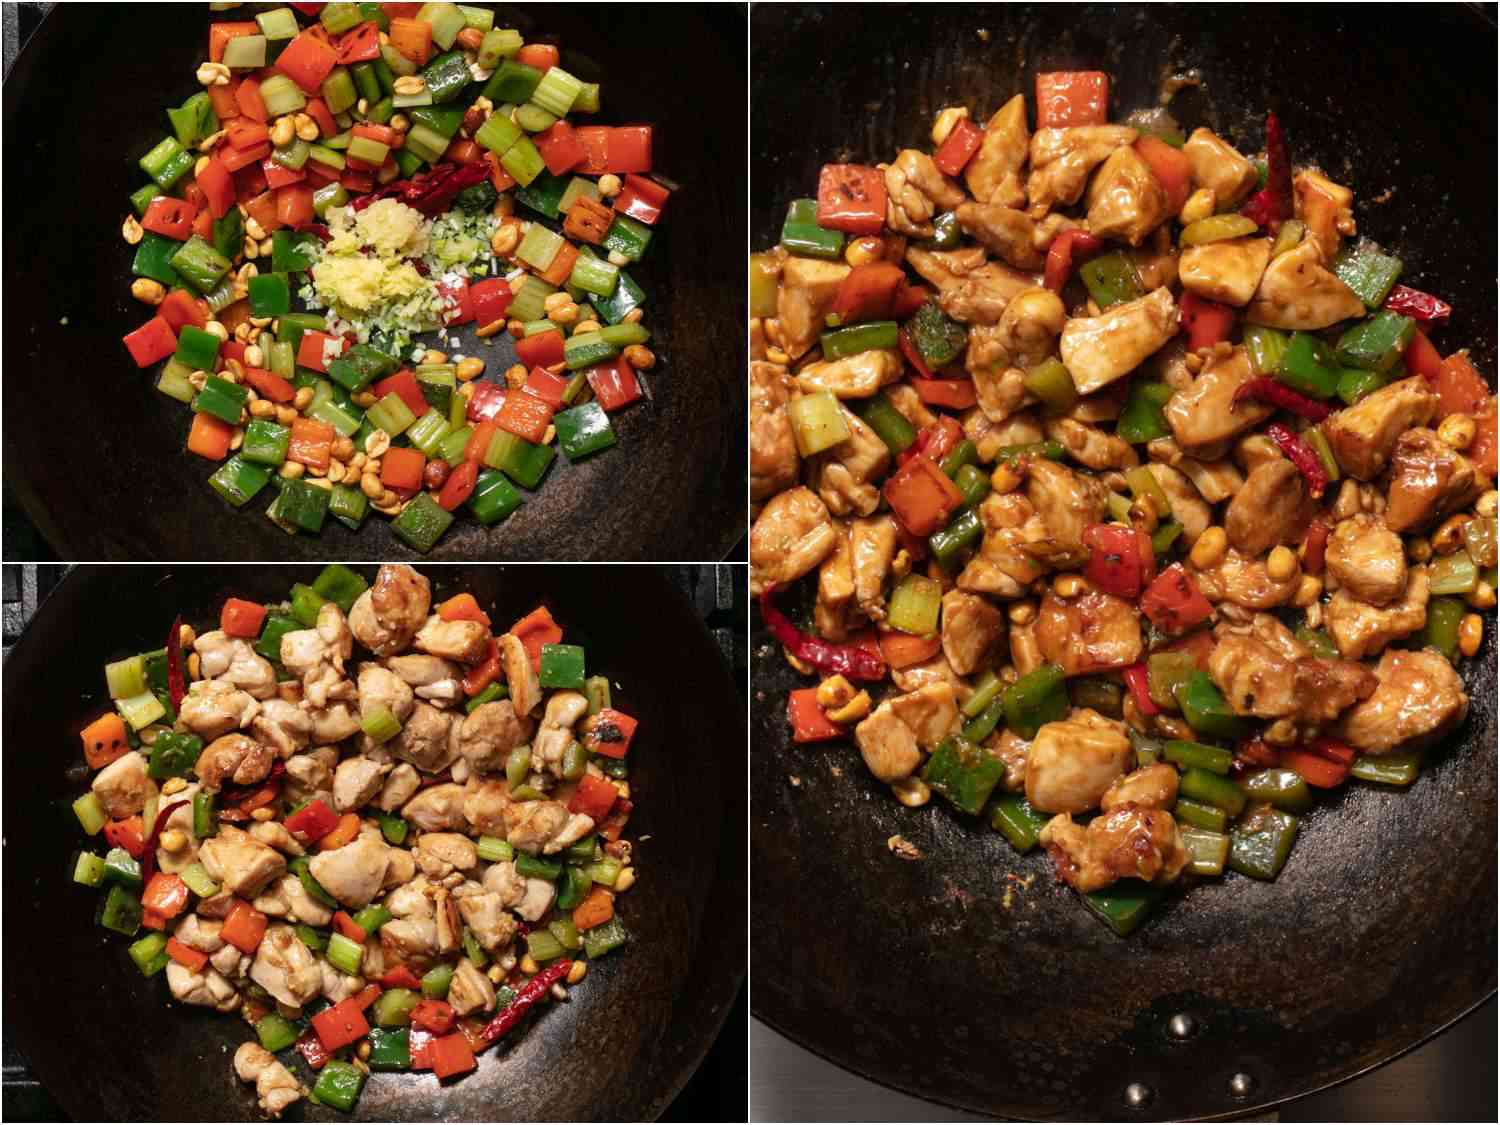 Photo collage showing finishing takeout-style kung pao chicken in a wok: adding aromatics, adding chicken, and adding sauce.